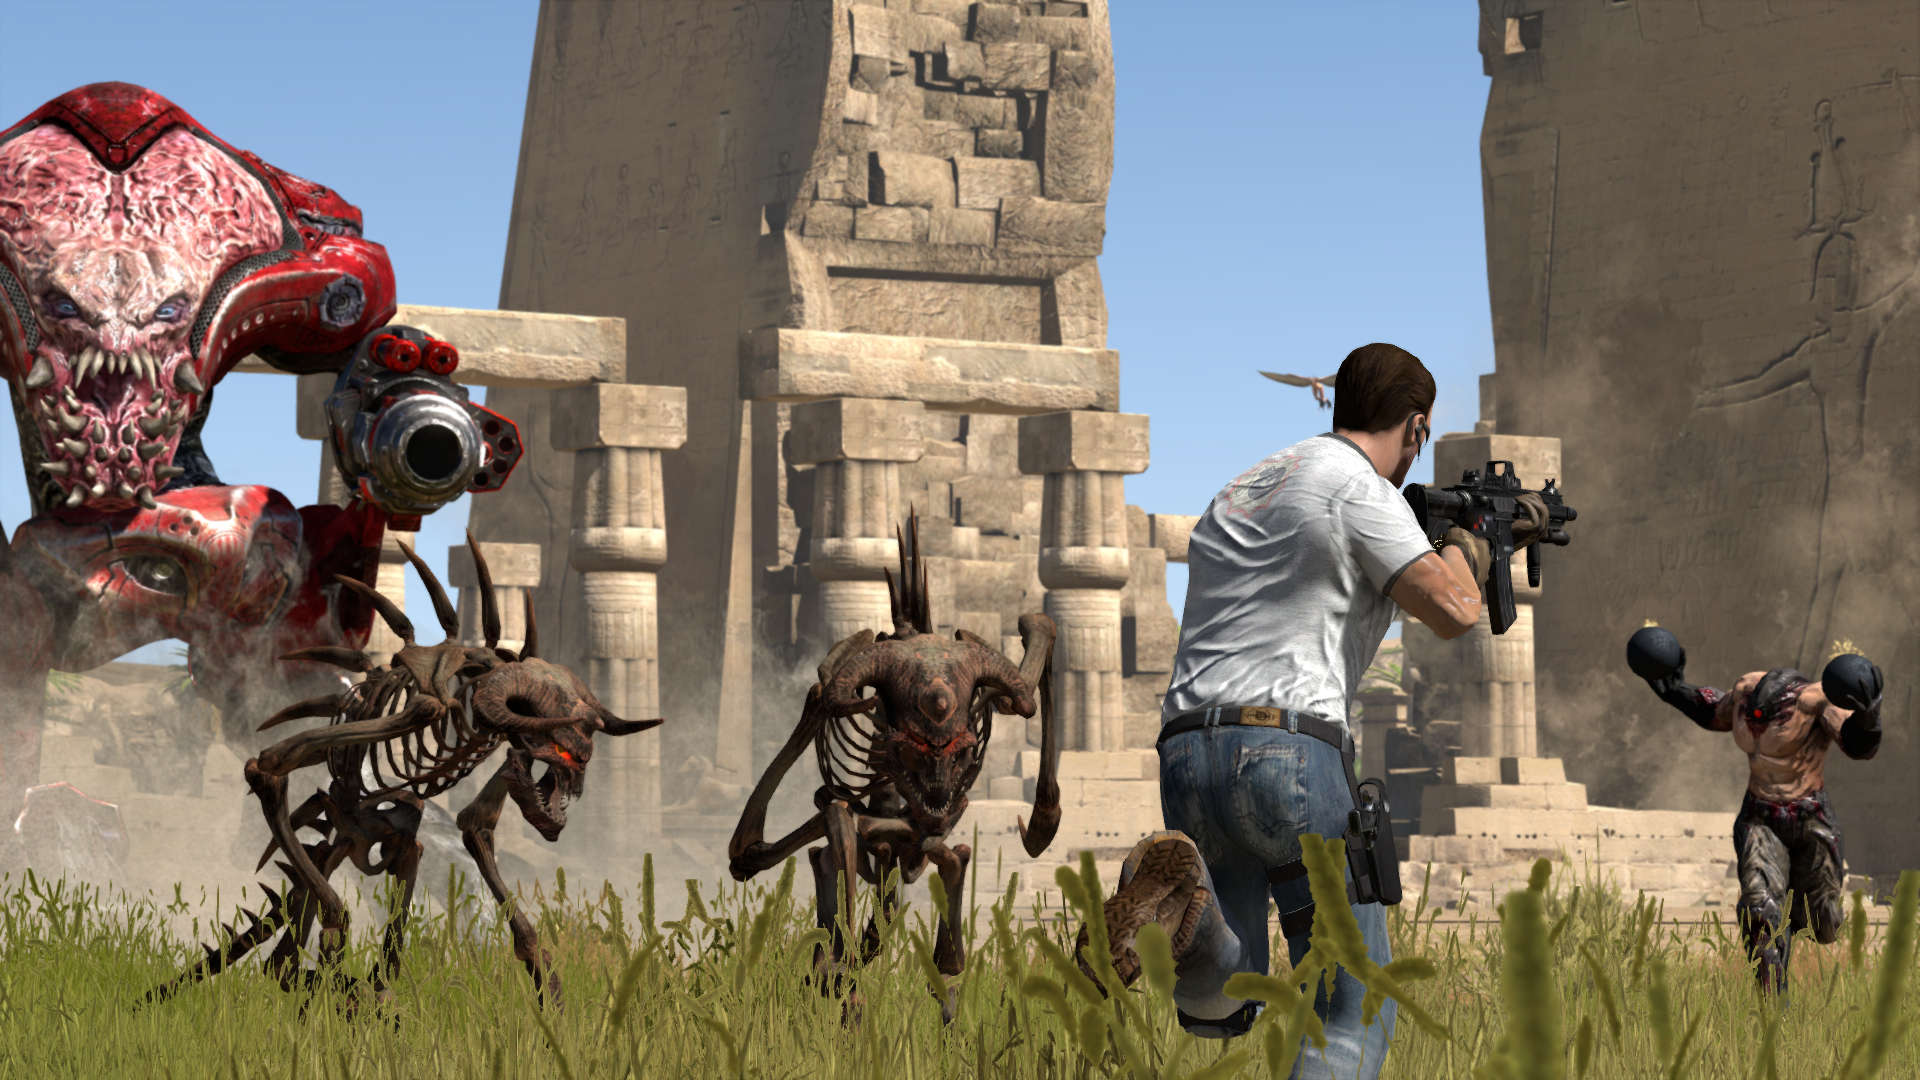 Serious Sam 3 Bfe Full Pc İndir Full Program İndir